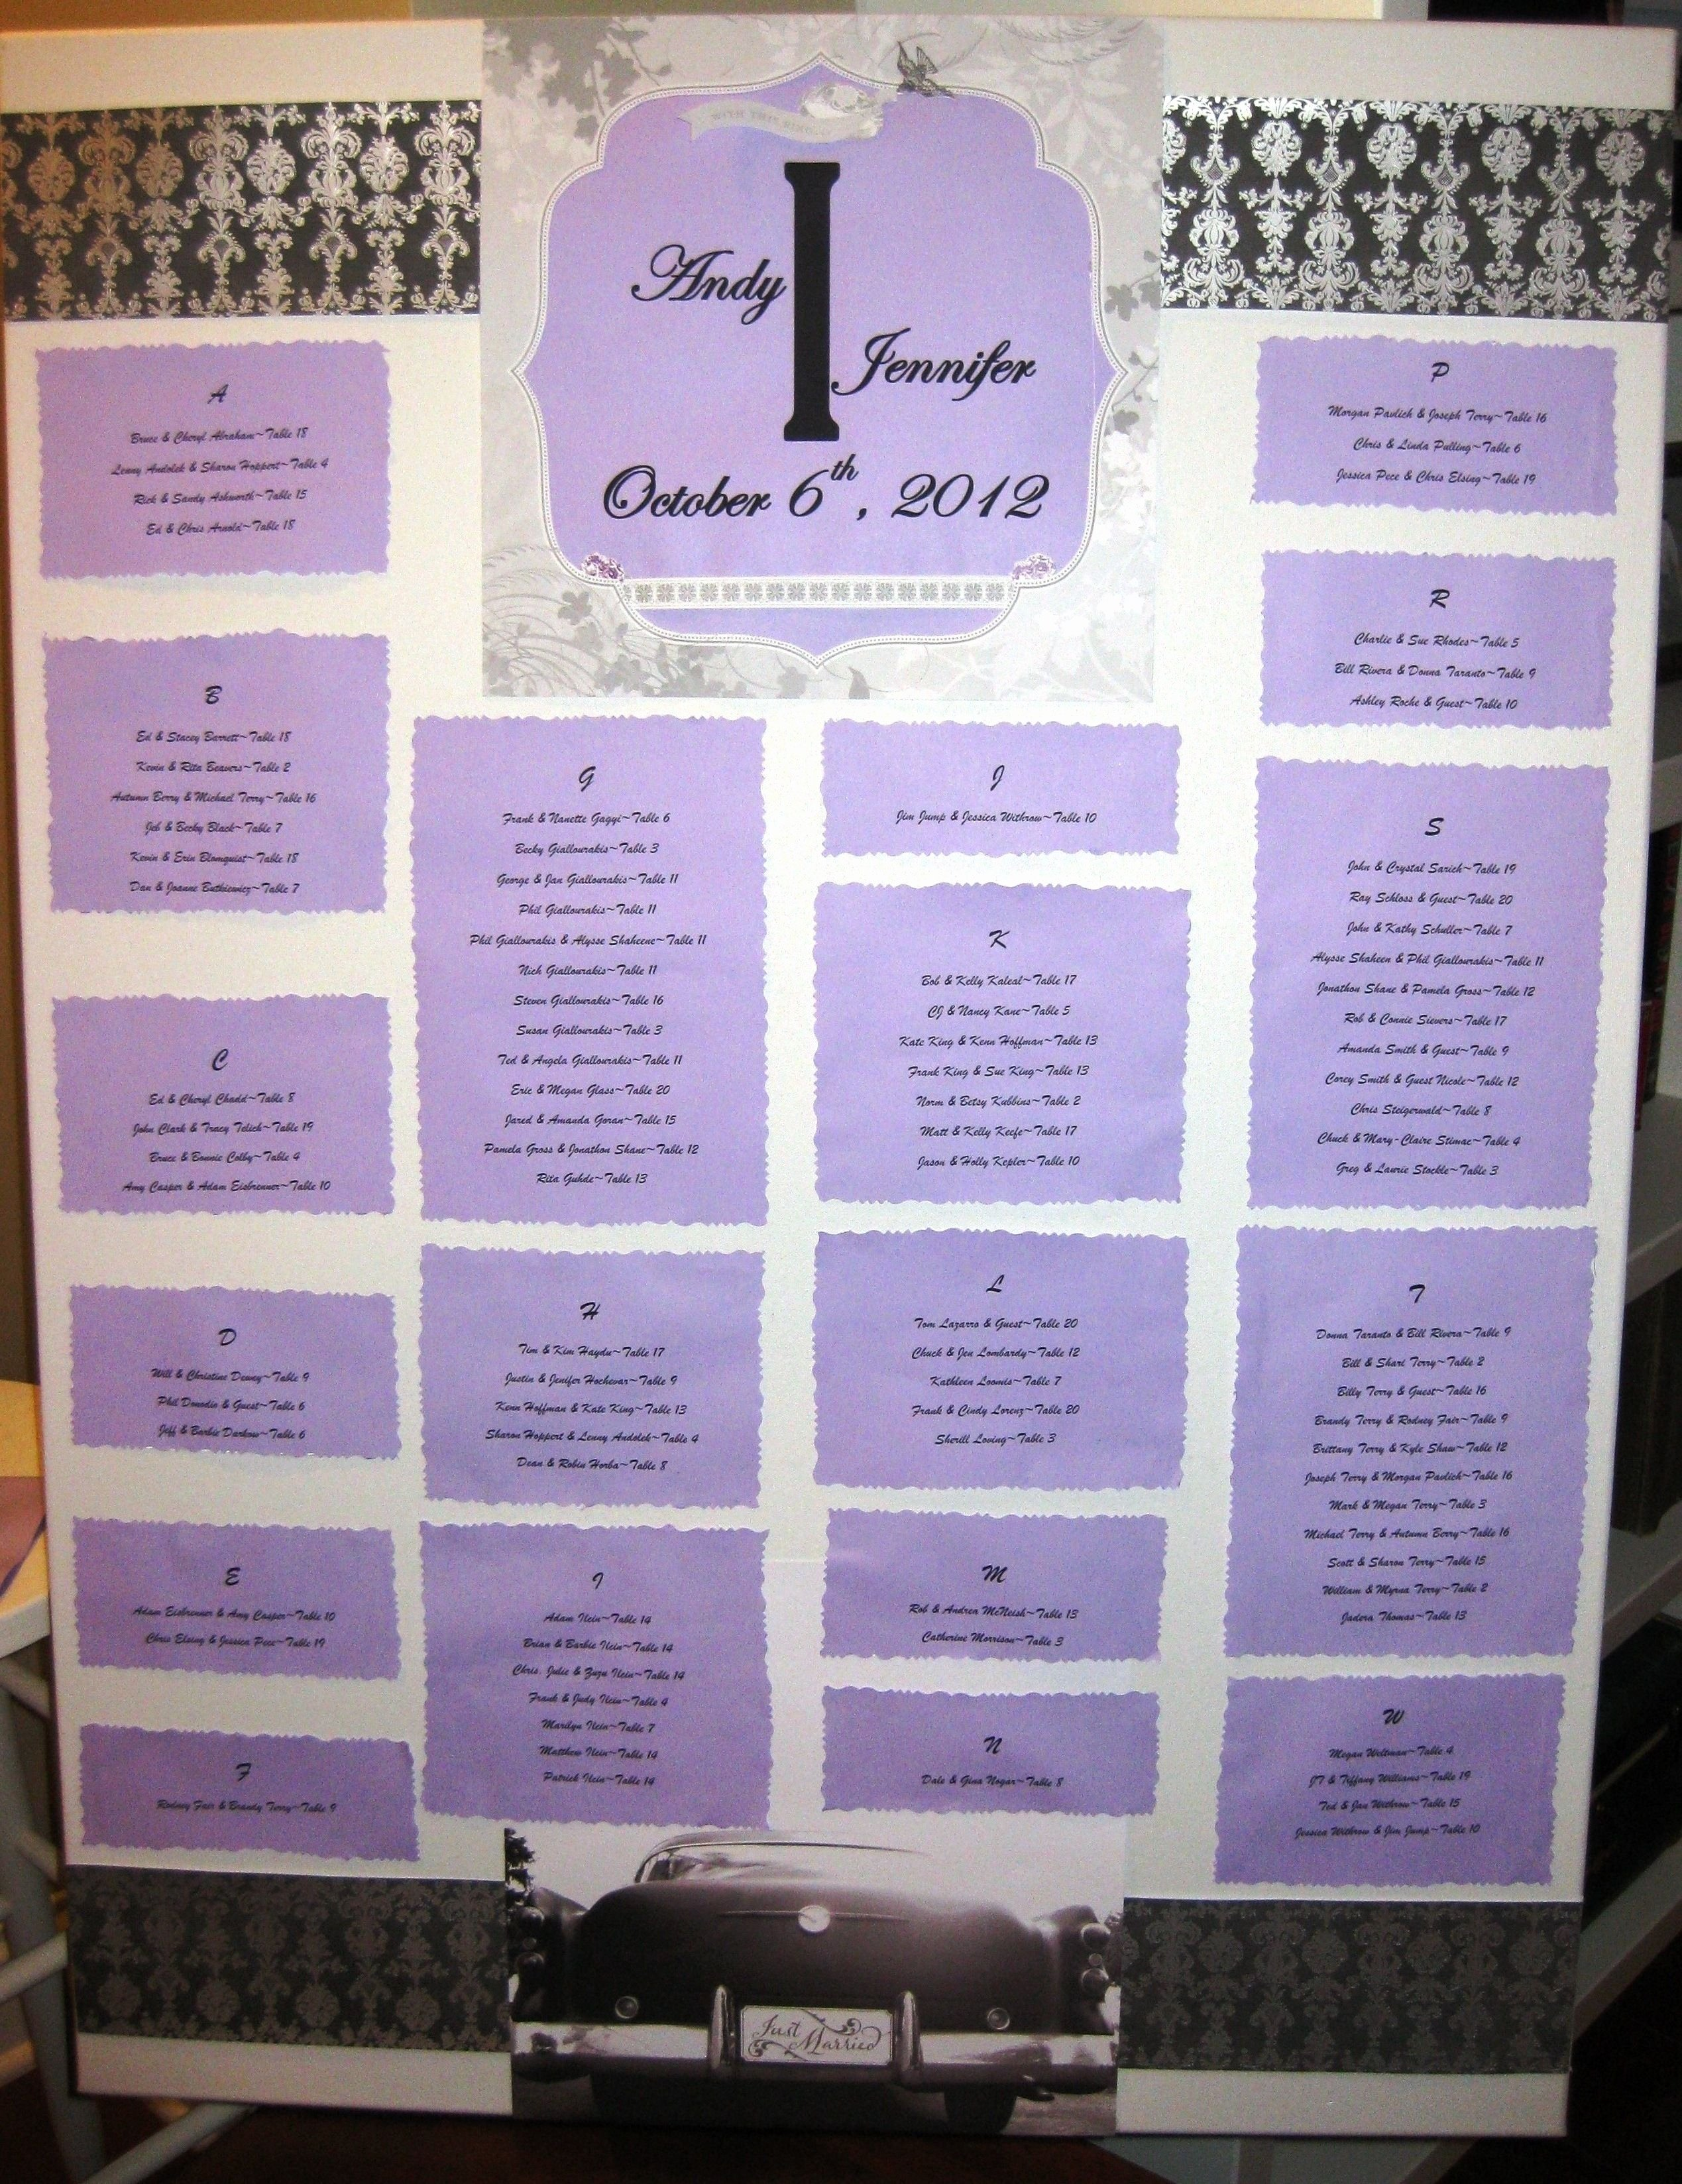 Wedding Seating Chart Alphabetical Awesome Make Your Own Wedding Reception Seating Chart Mine is